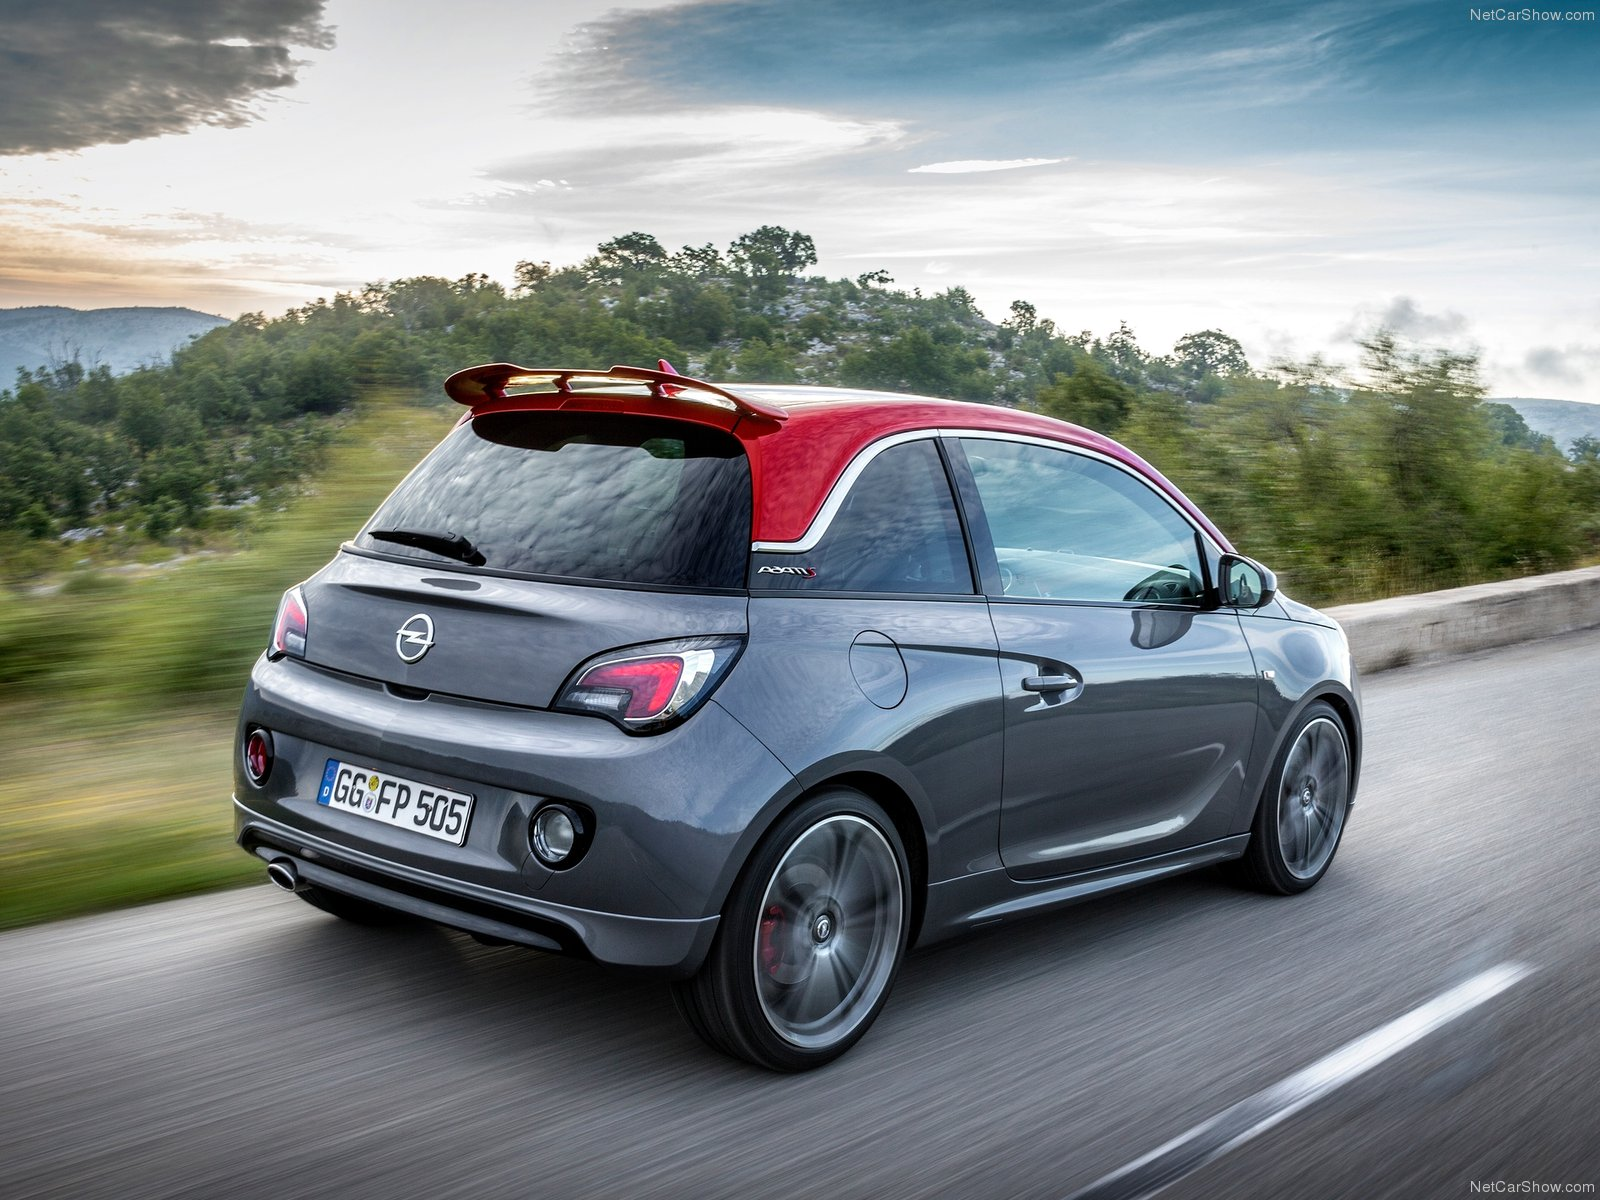 opel adam s picture 149930 opel photo gallery. Black Bedroom Furniture Sets. Home Design Ideas